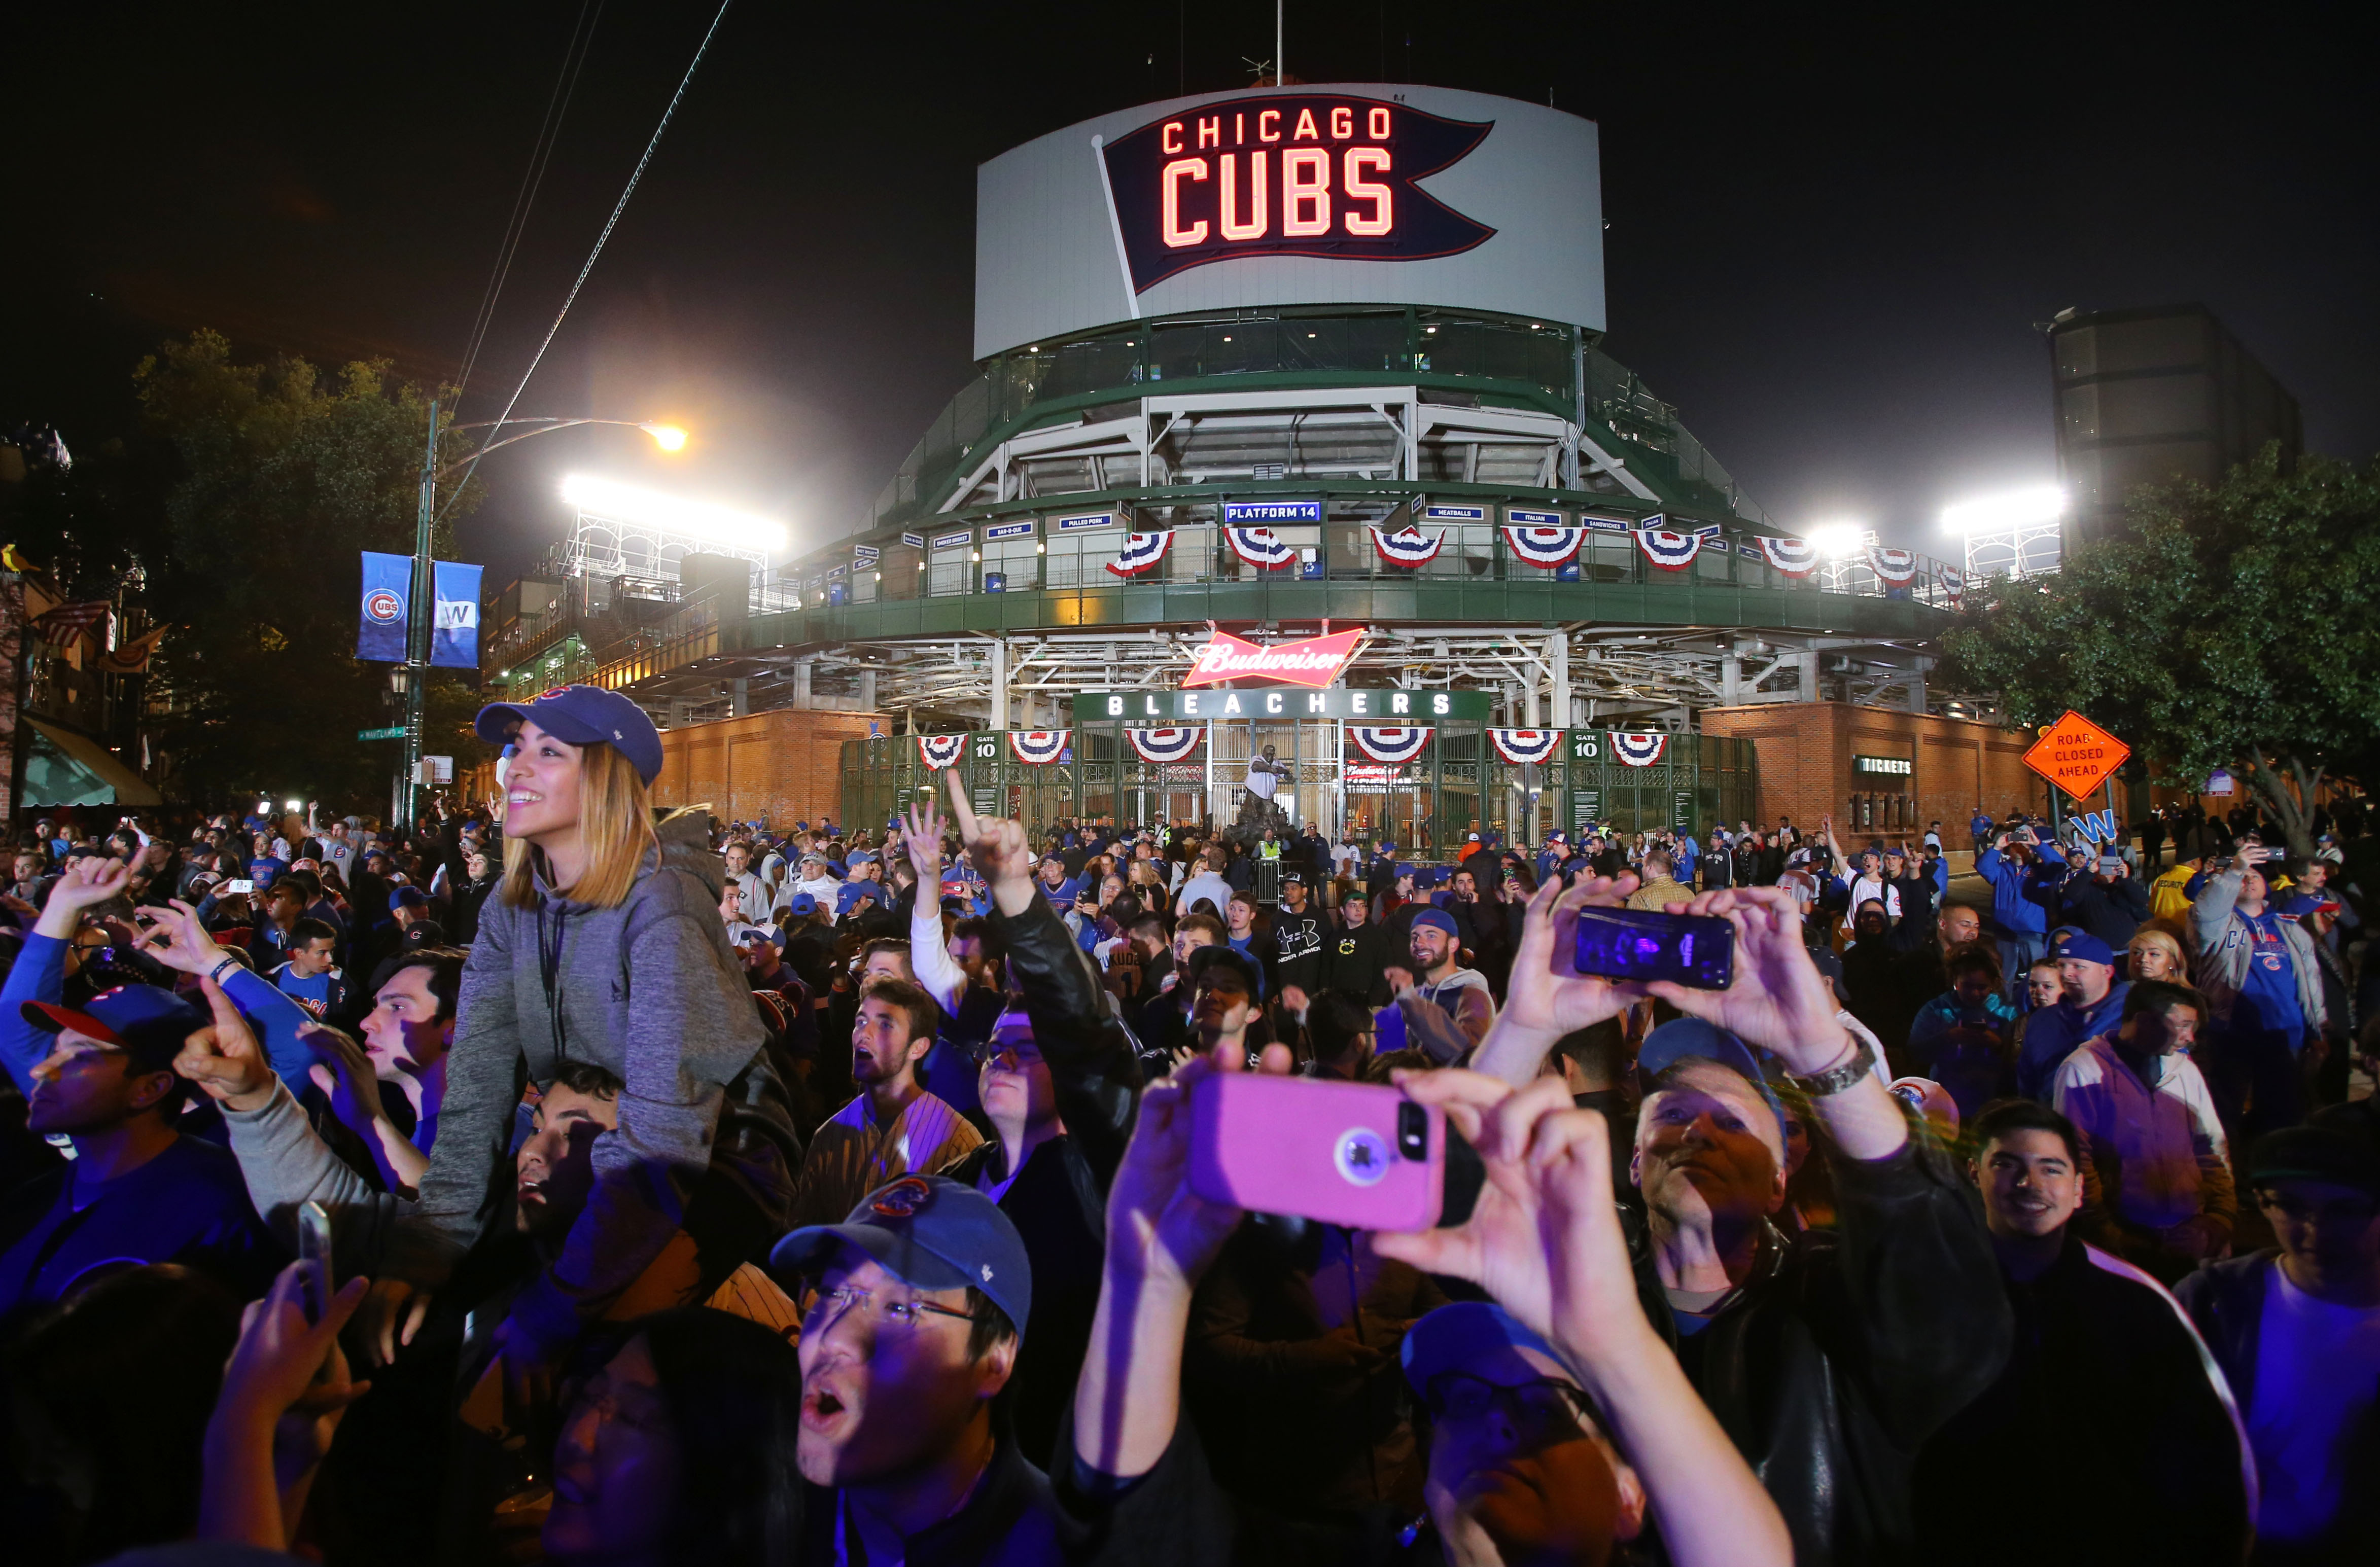 Oct 22, 2016; Chicago, IL, USA; Chicago Cubs fans celebrate outside of the bleachers entrance after game six of the 2016 NLCS playoff baseball series between the Cubs and Los Angeles Dodgers at Wrigley Field. Mandatory Credit: Jerry Lai-USA TODAY Sports